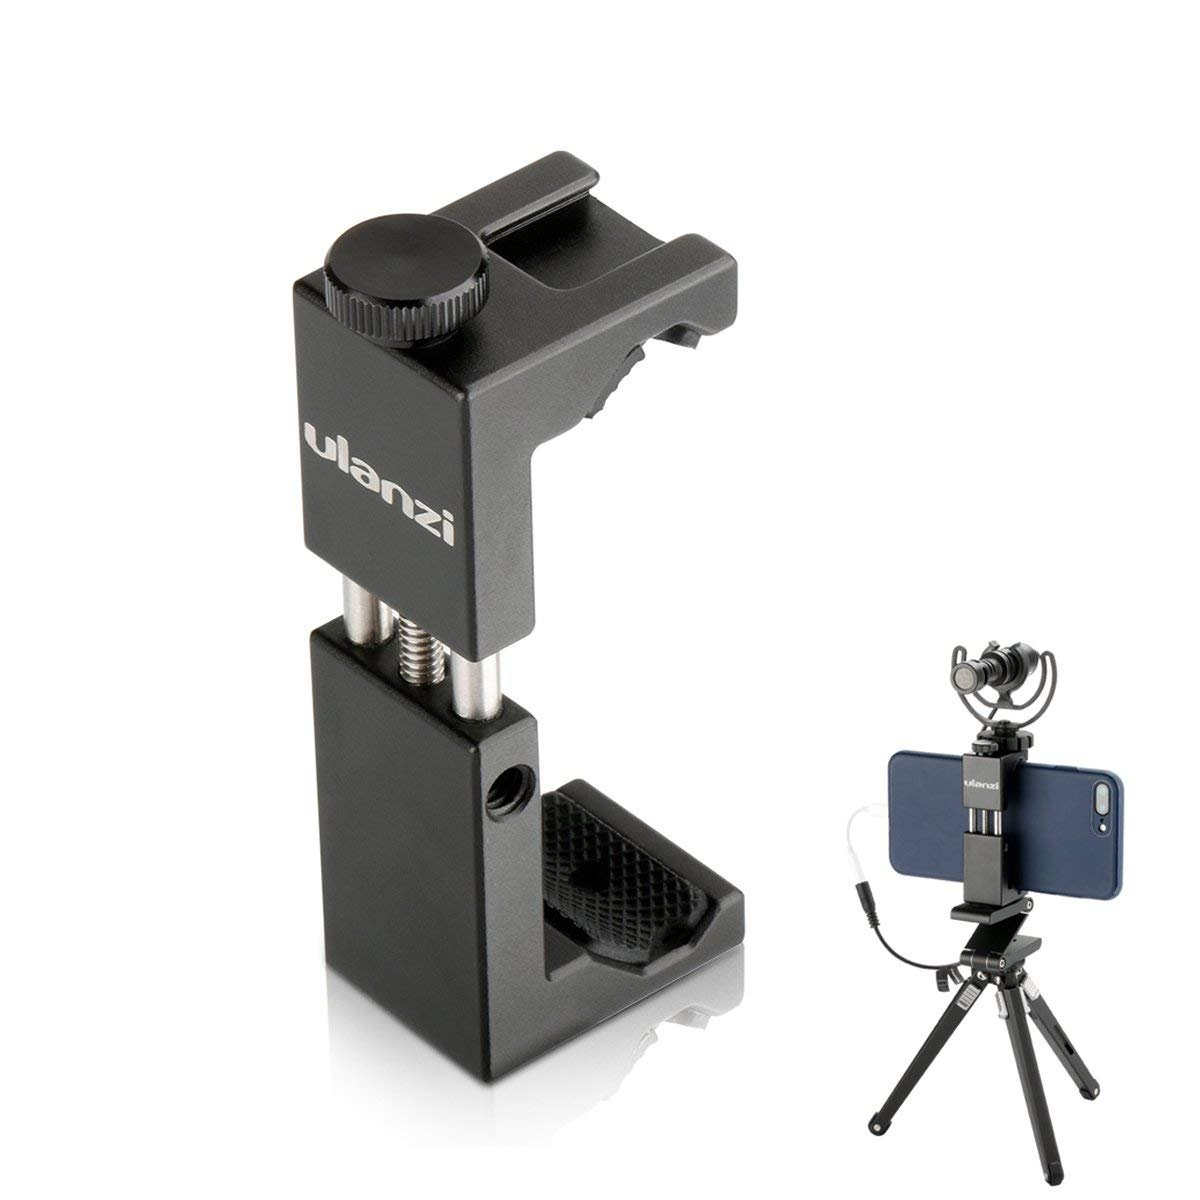 Phone Tripod Mount w Cold Shoe, by Ulanzi, Metal Phone Tripod Adapter Aluminum Alloy Vertical w 1/4 inch Screw for iPhone X 8 7 6 plus Huawei for Tripod, Selfie Stick, Microphone, Light (ST-02S)